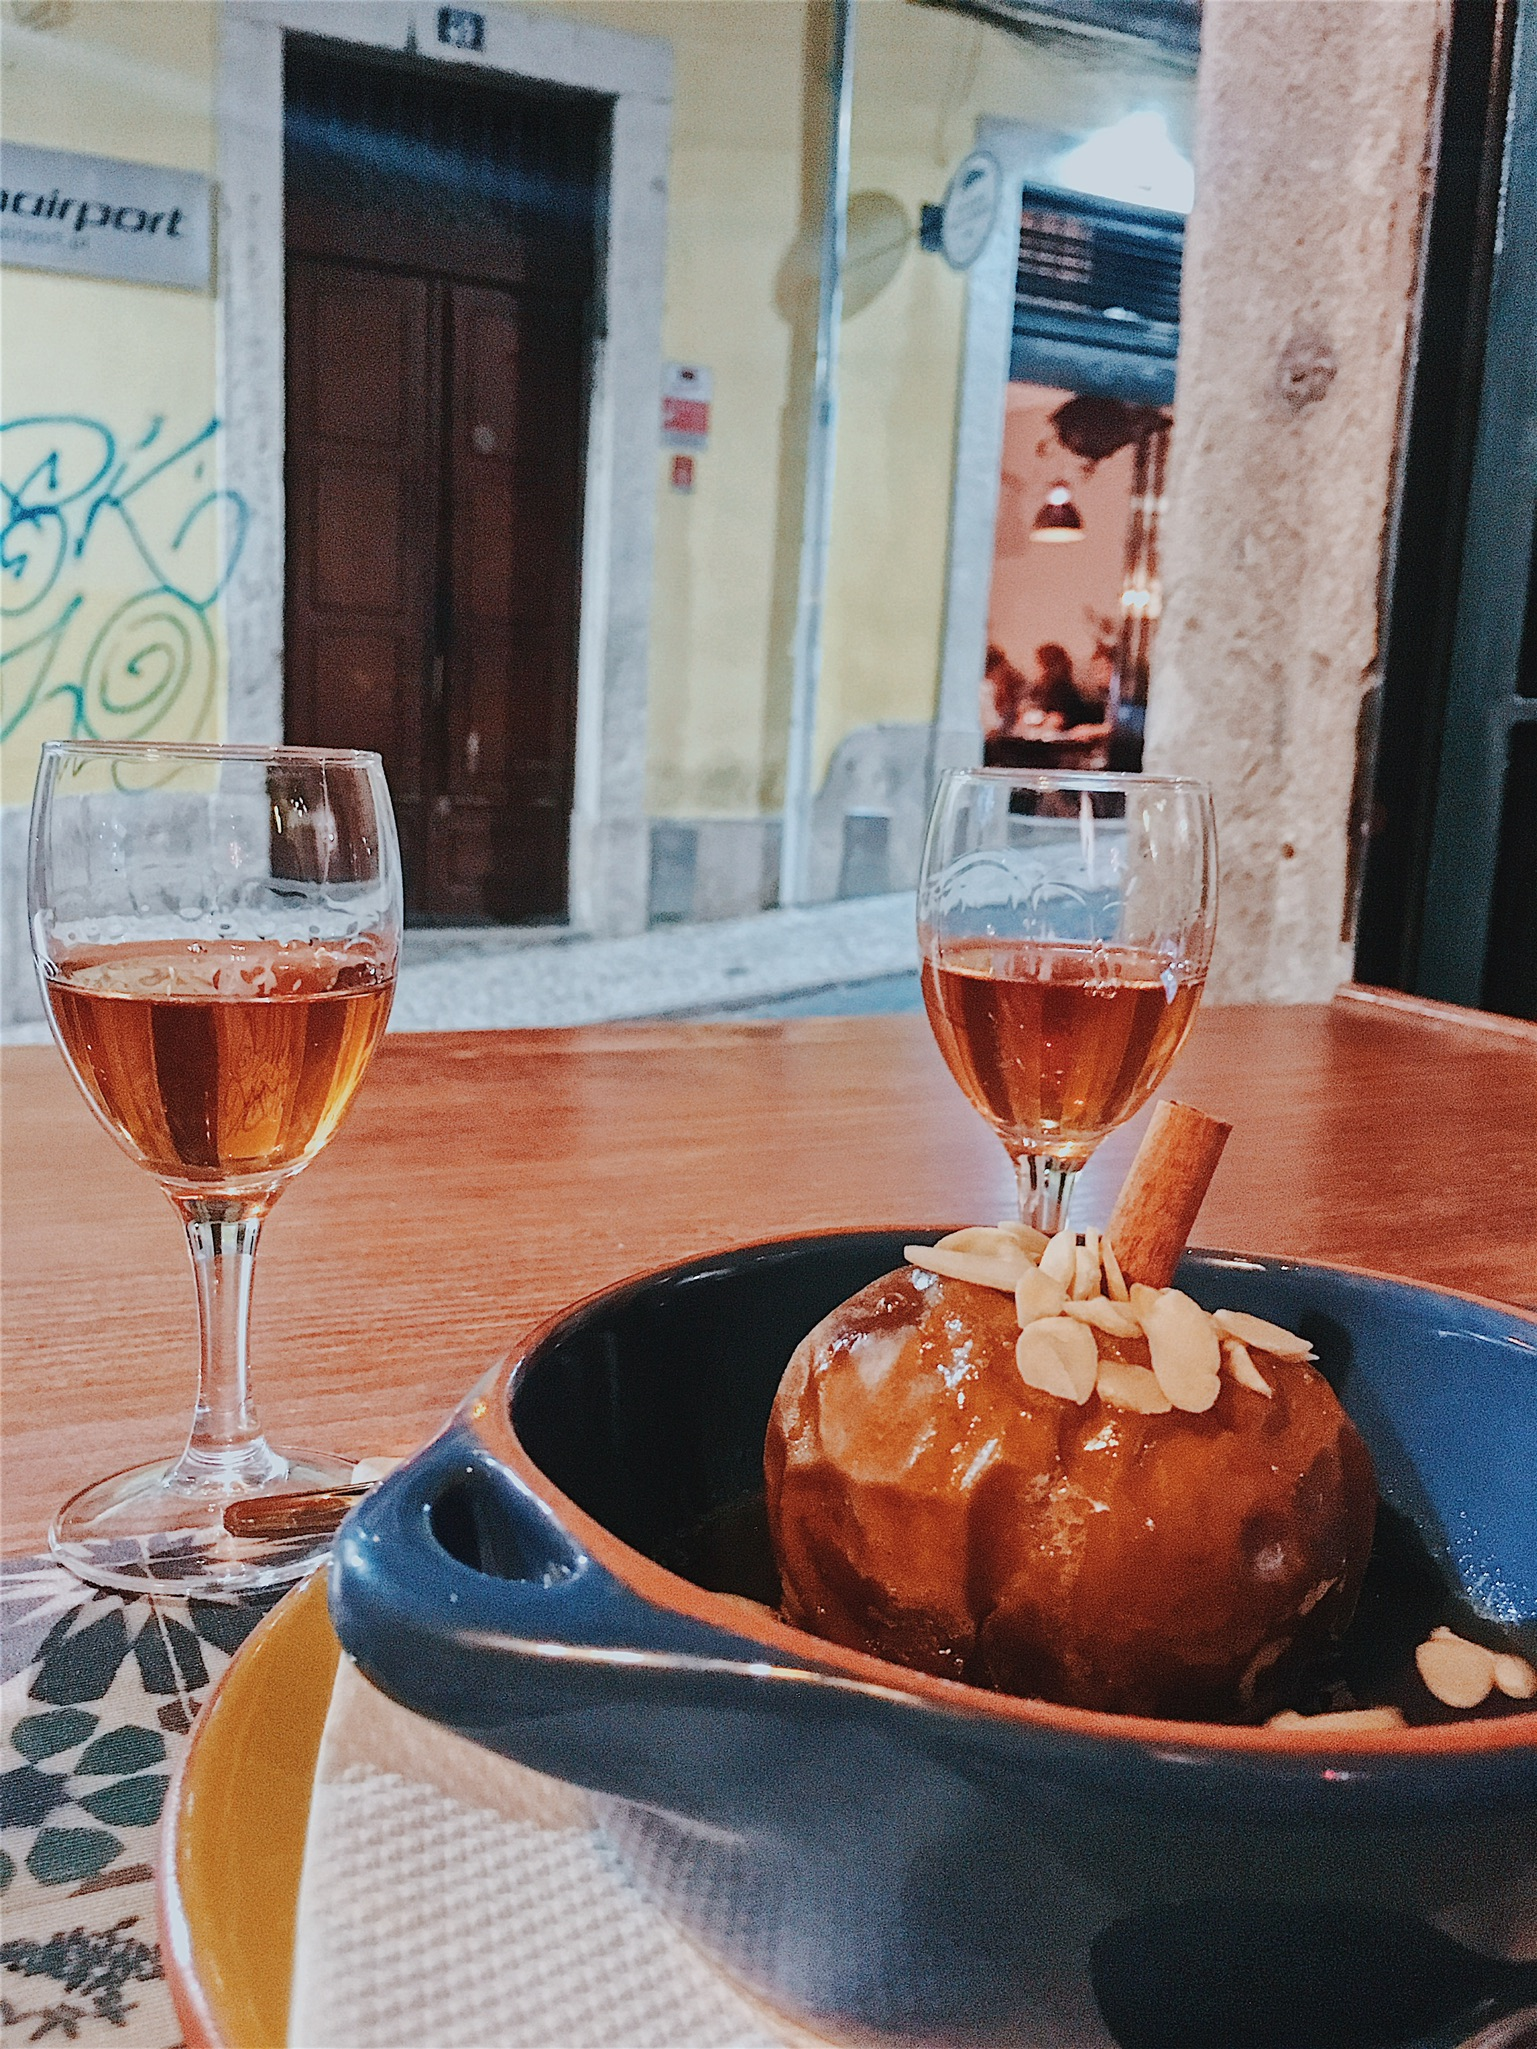 """Baked apple drenched in sweet """"jeropiga"""" liquor , served with the same liquor for you to sip on"""